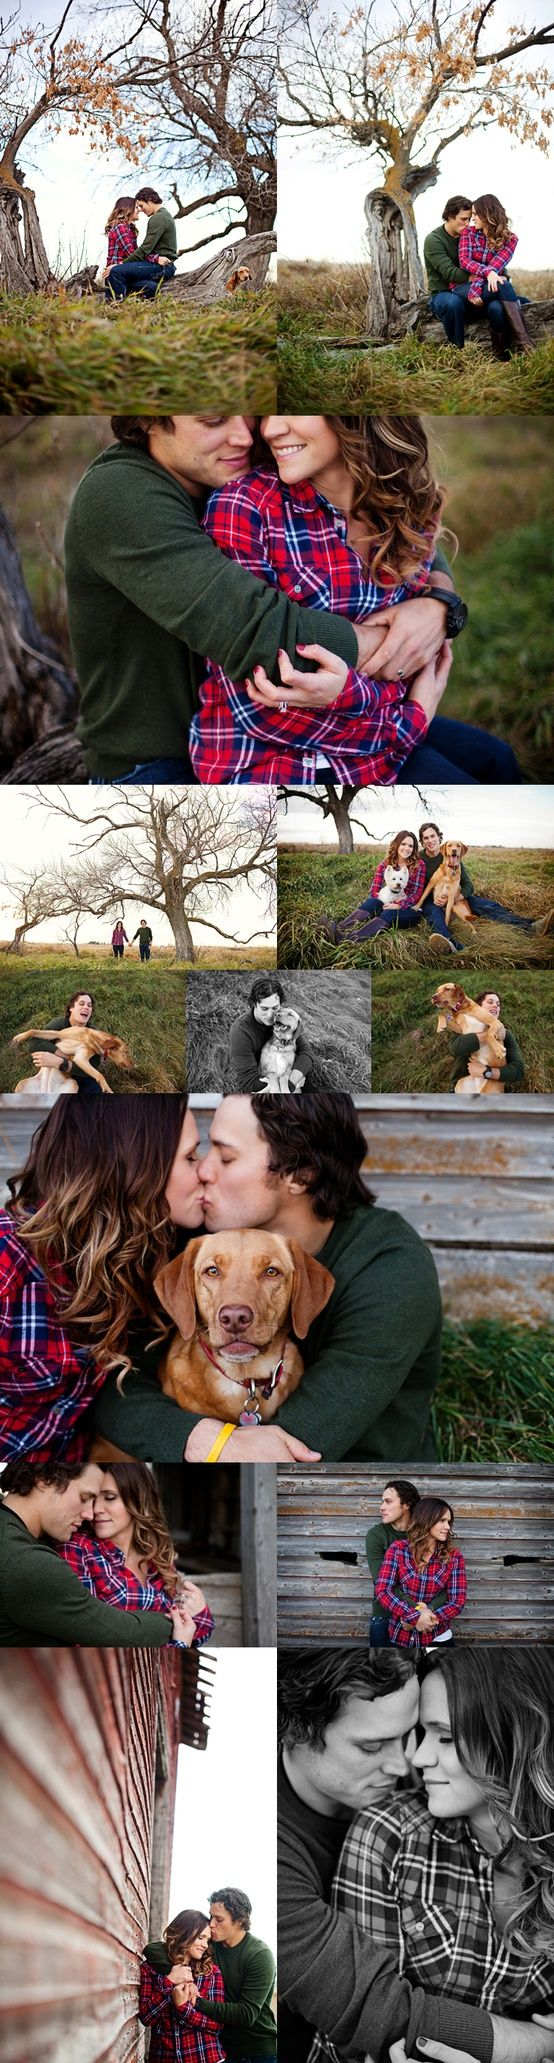 You could do his and hers dogs as well - for a senior picture or something other than engagement